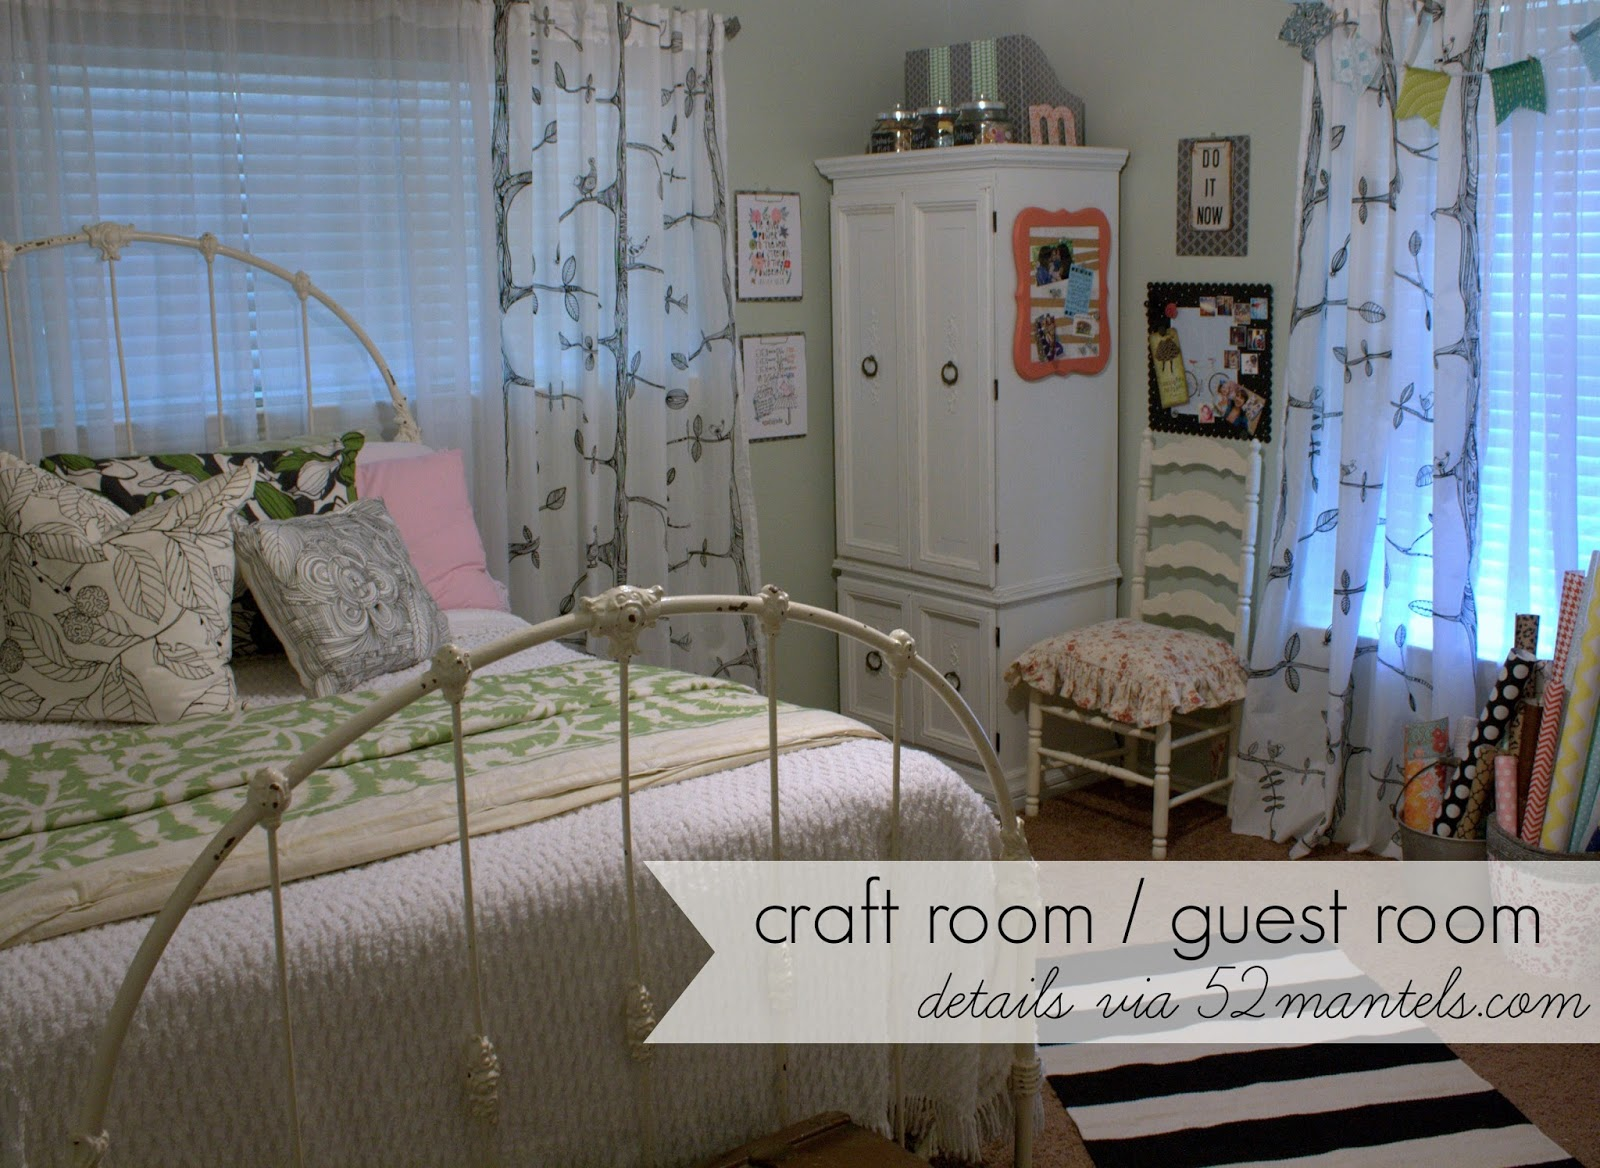 52 Mantels Combined Craft Room Guest Room